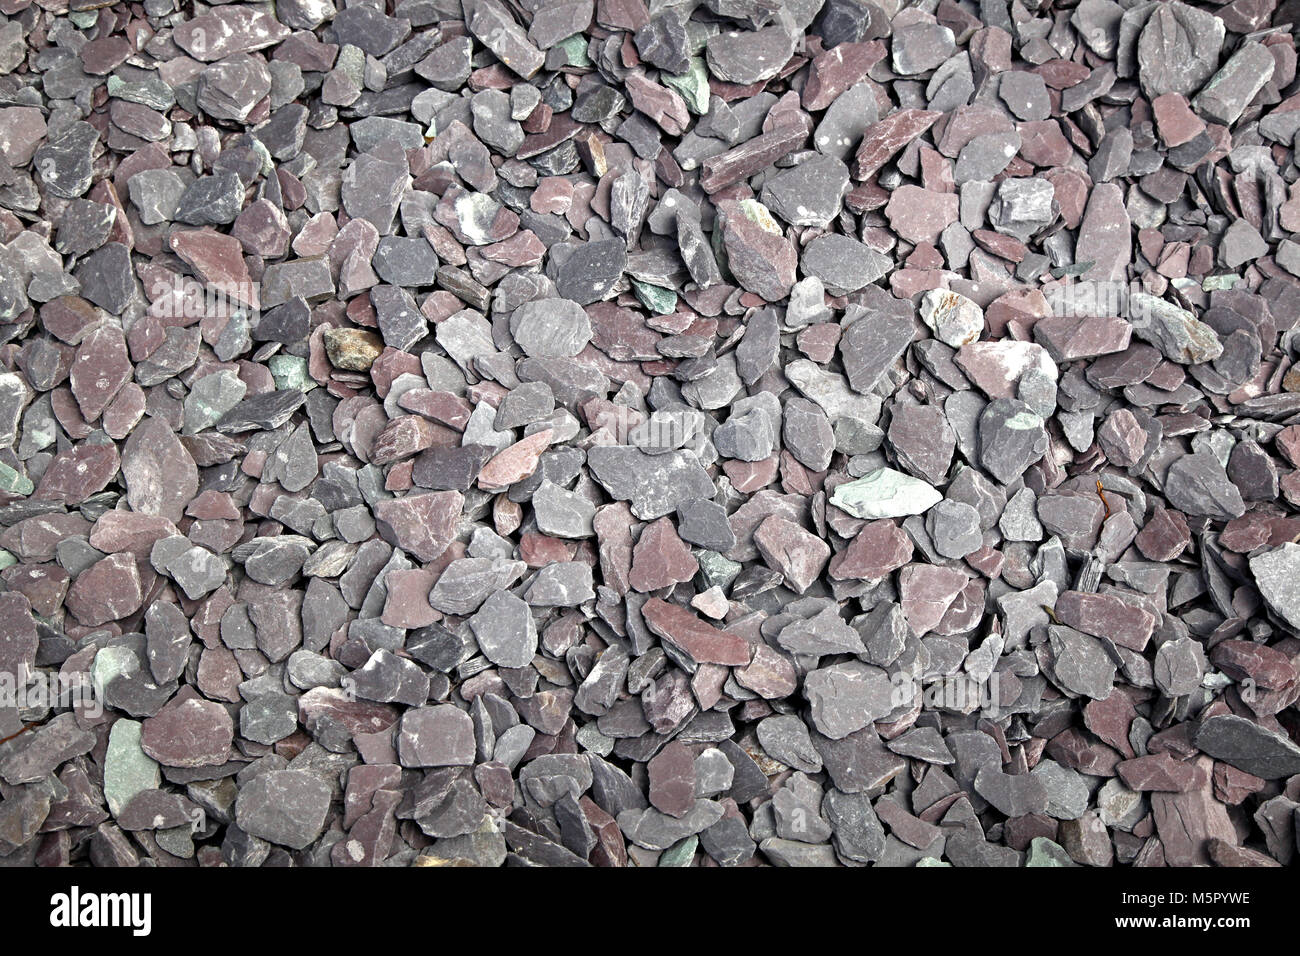 Background texture of small gray pointy stones - Stock Image